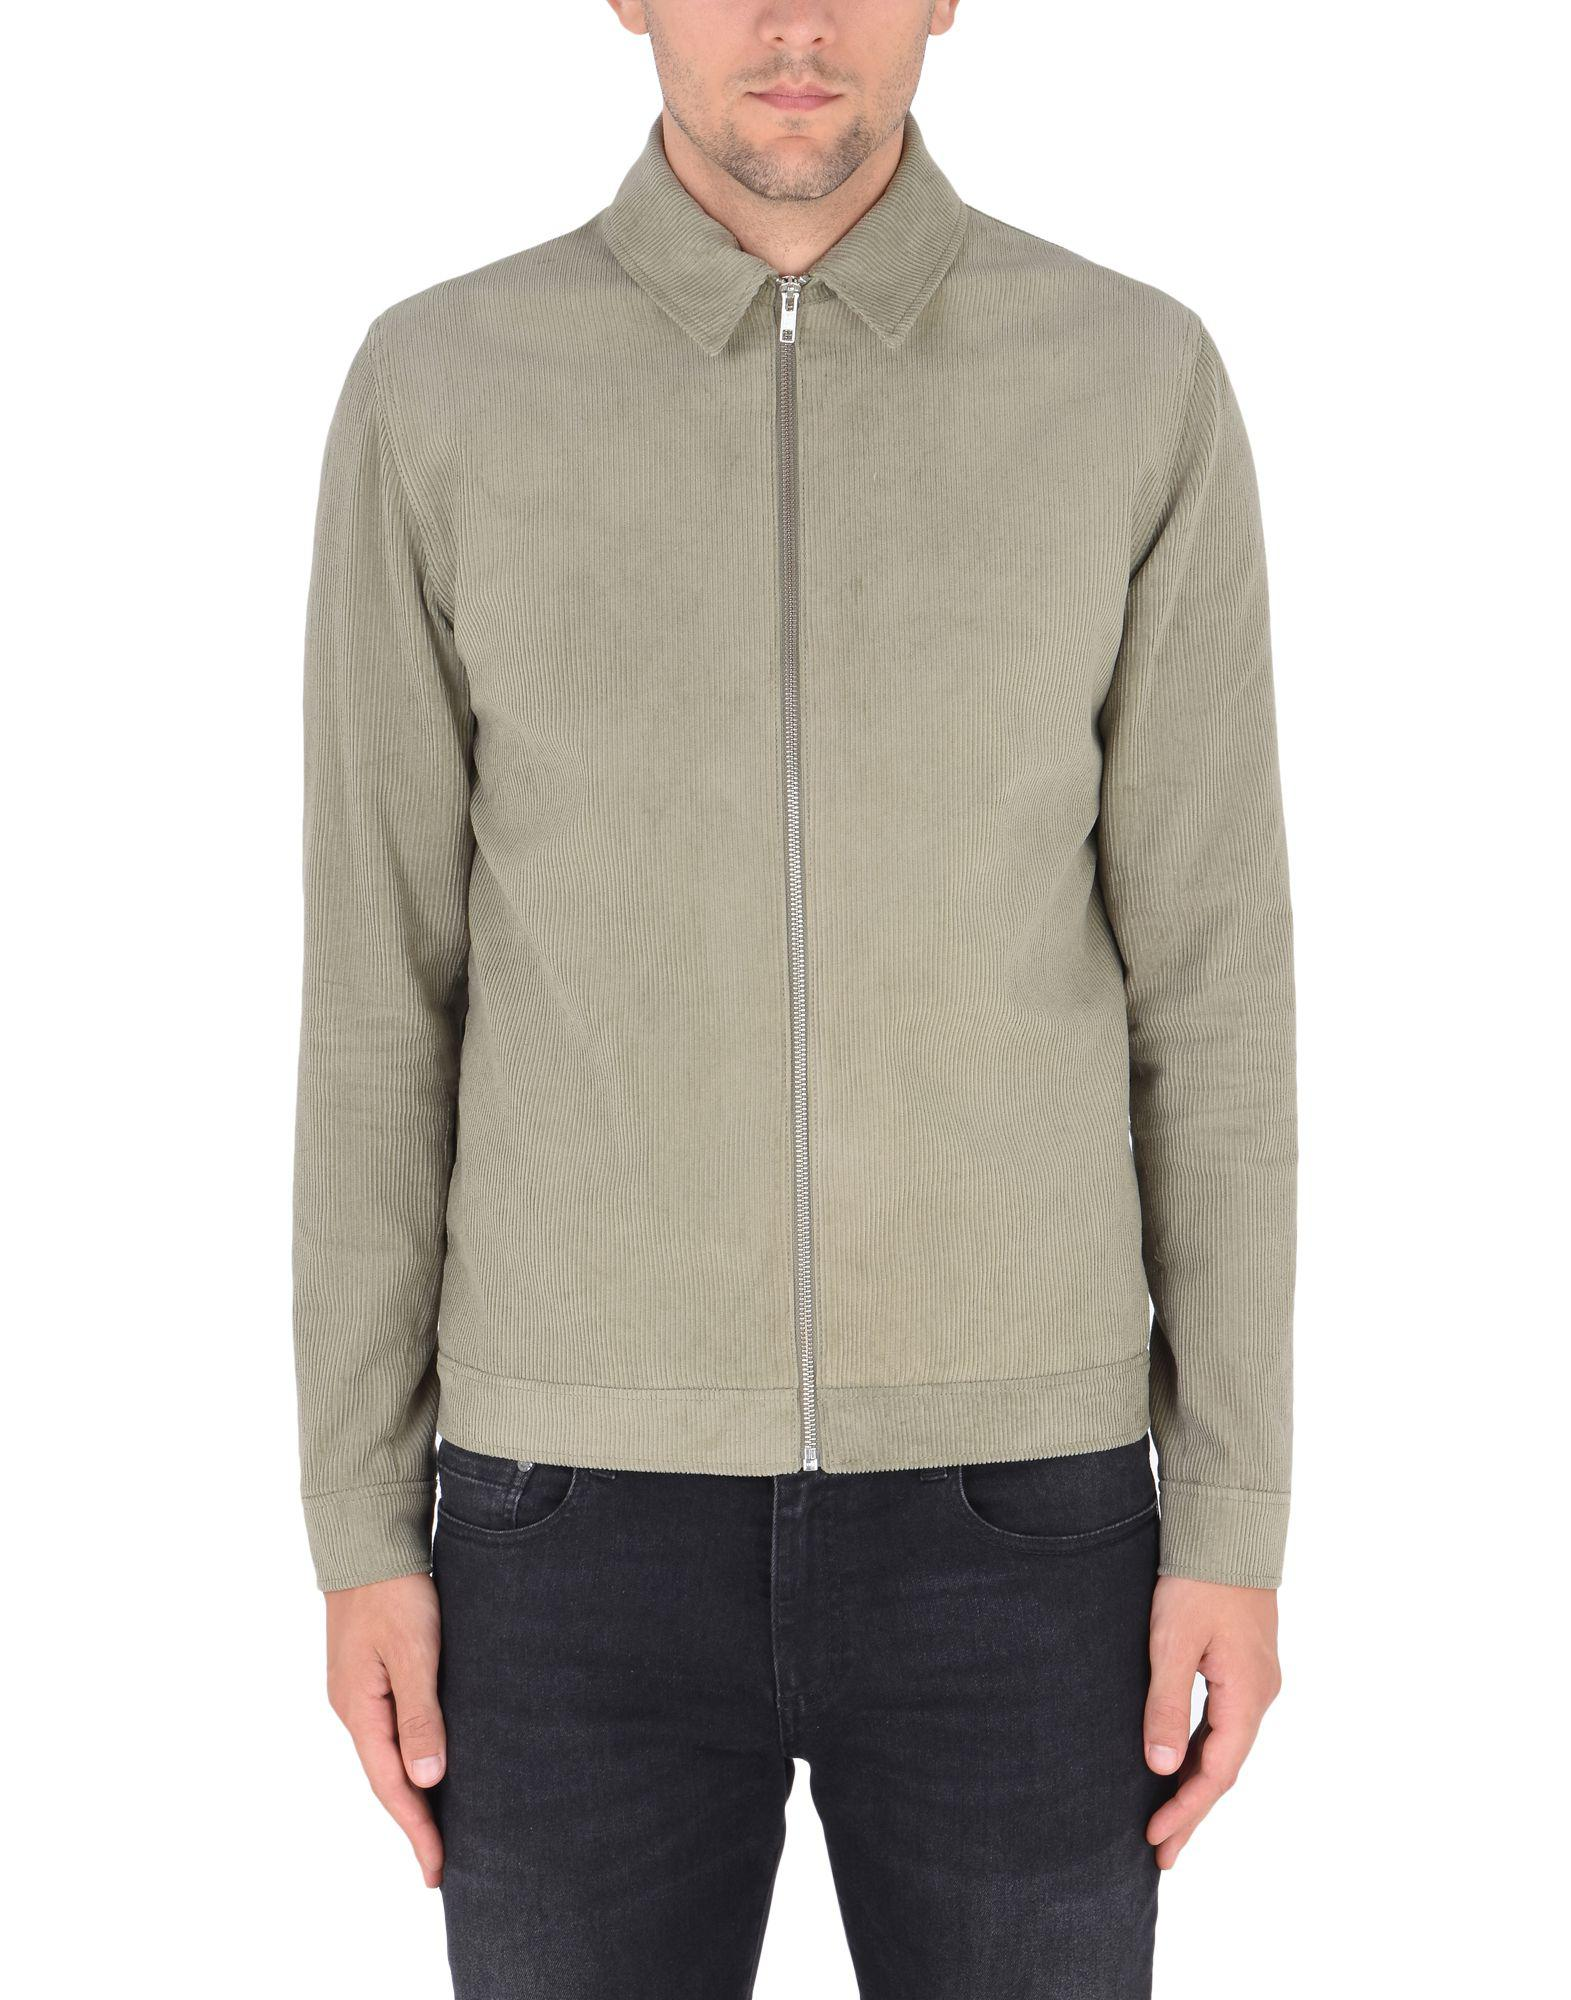 Samsøe & Samsøe Corduroy Jacket in Military Green (Green) for Men